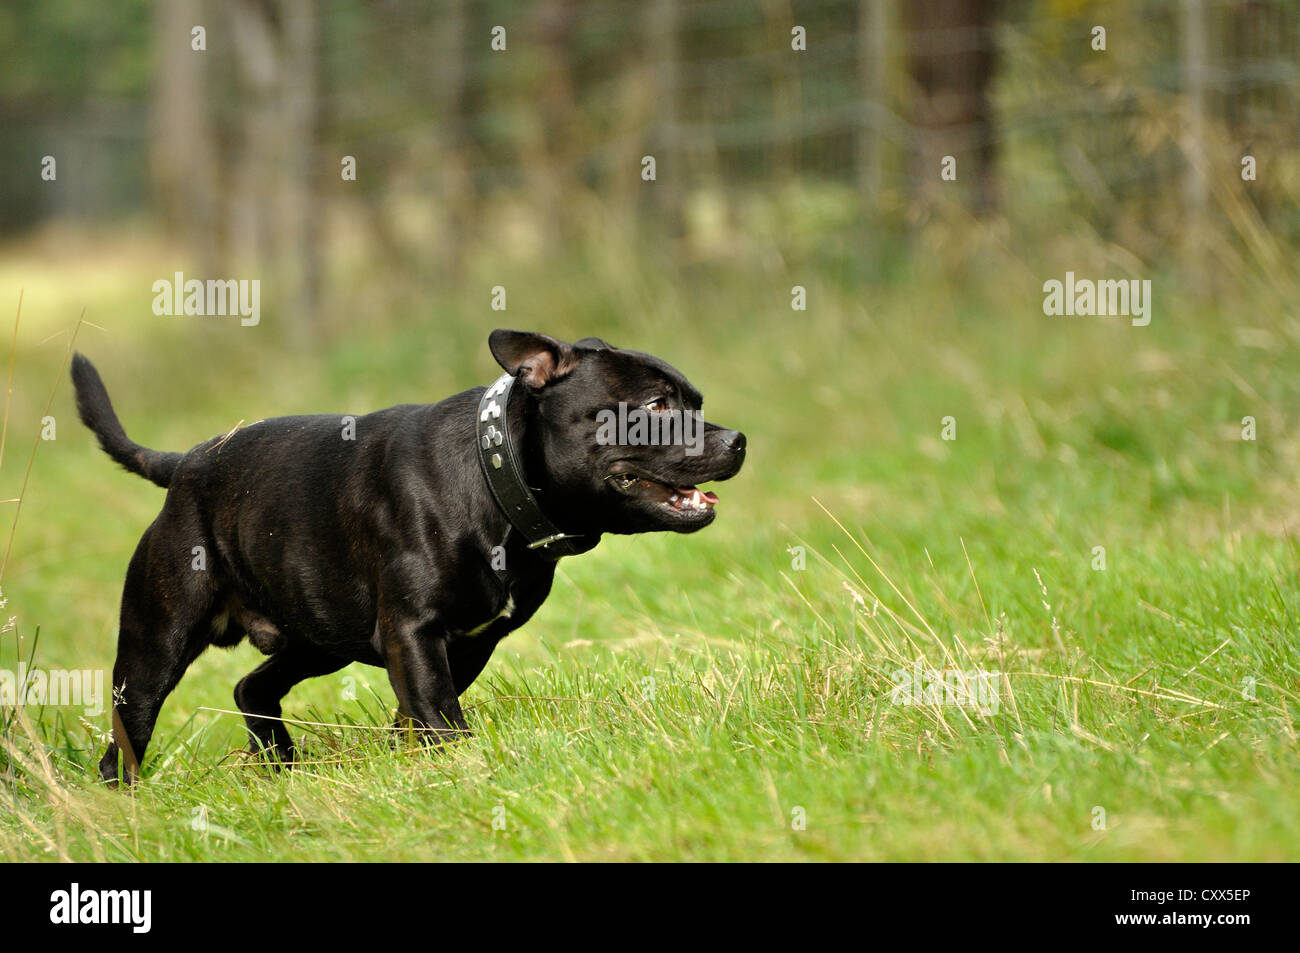 Staffordshire Bull Terrier moving through grass - Stock Image